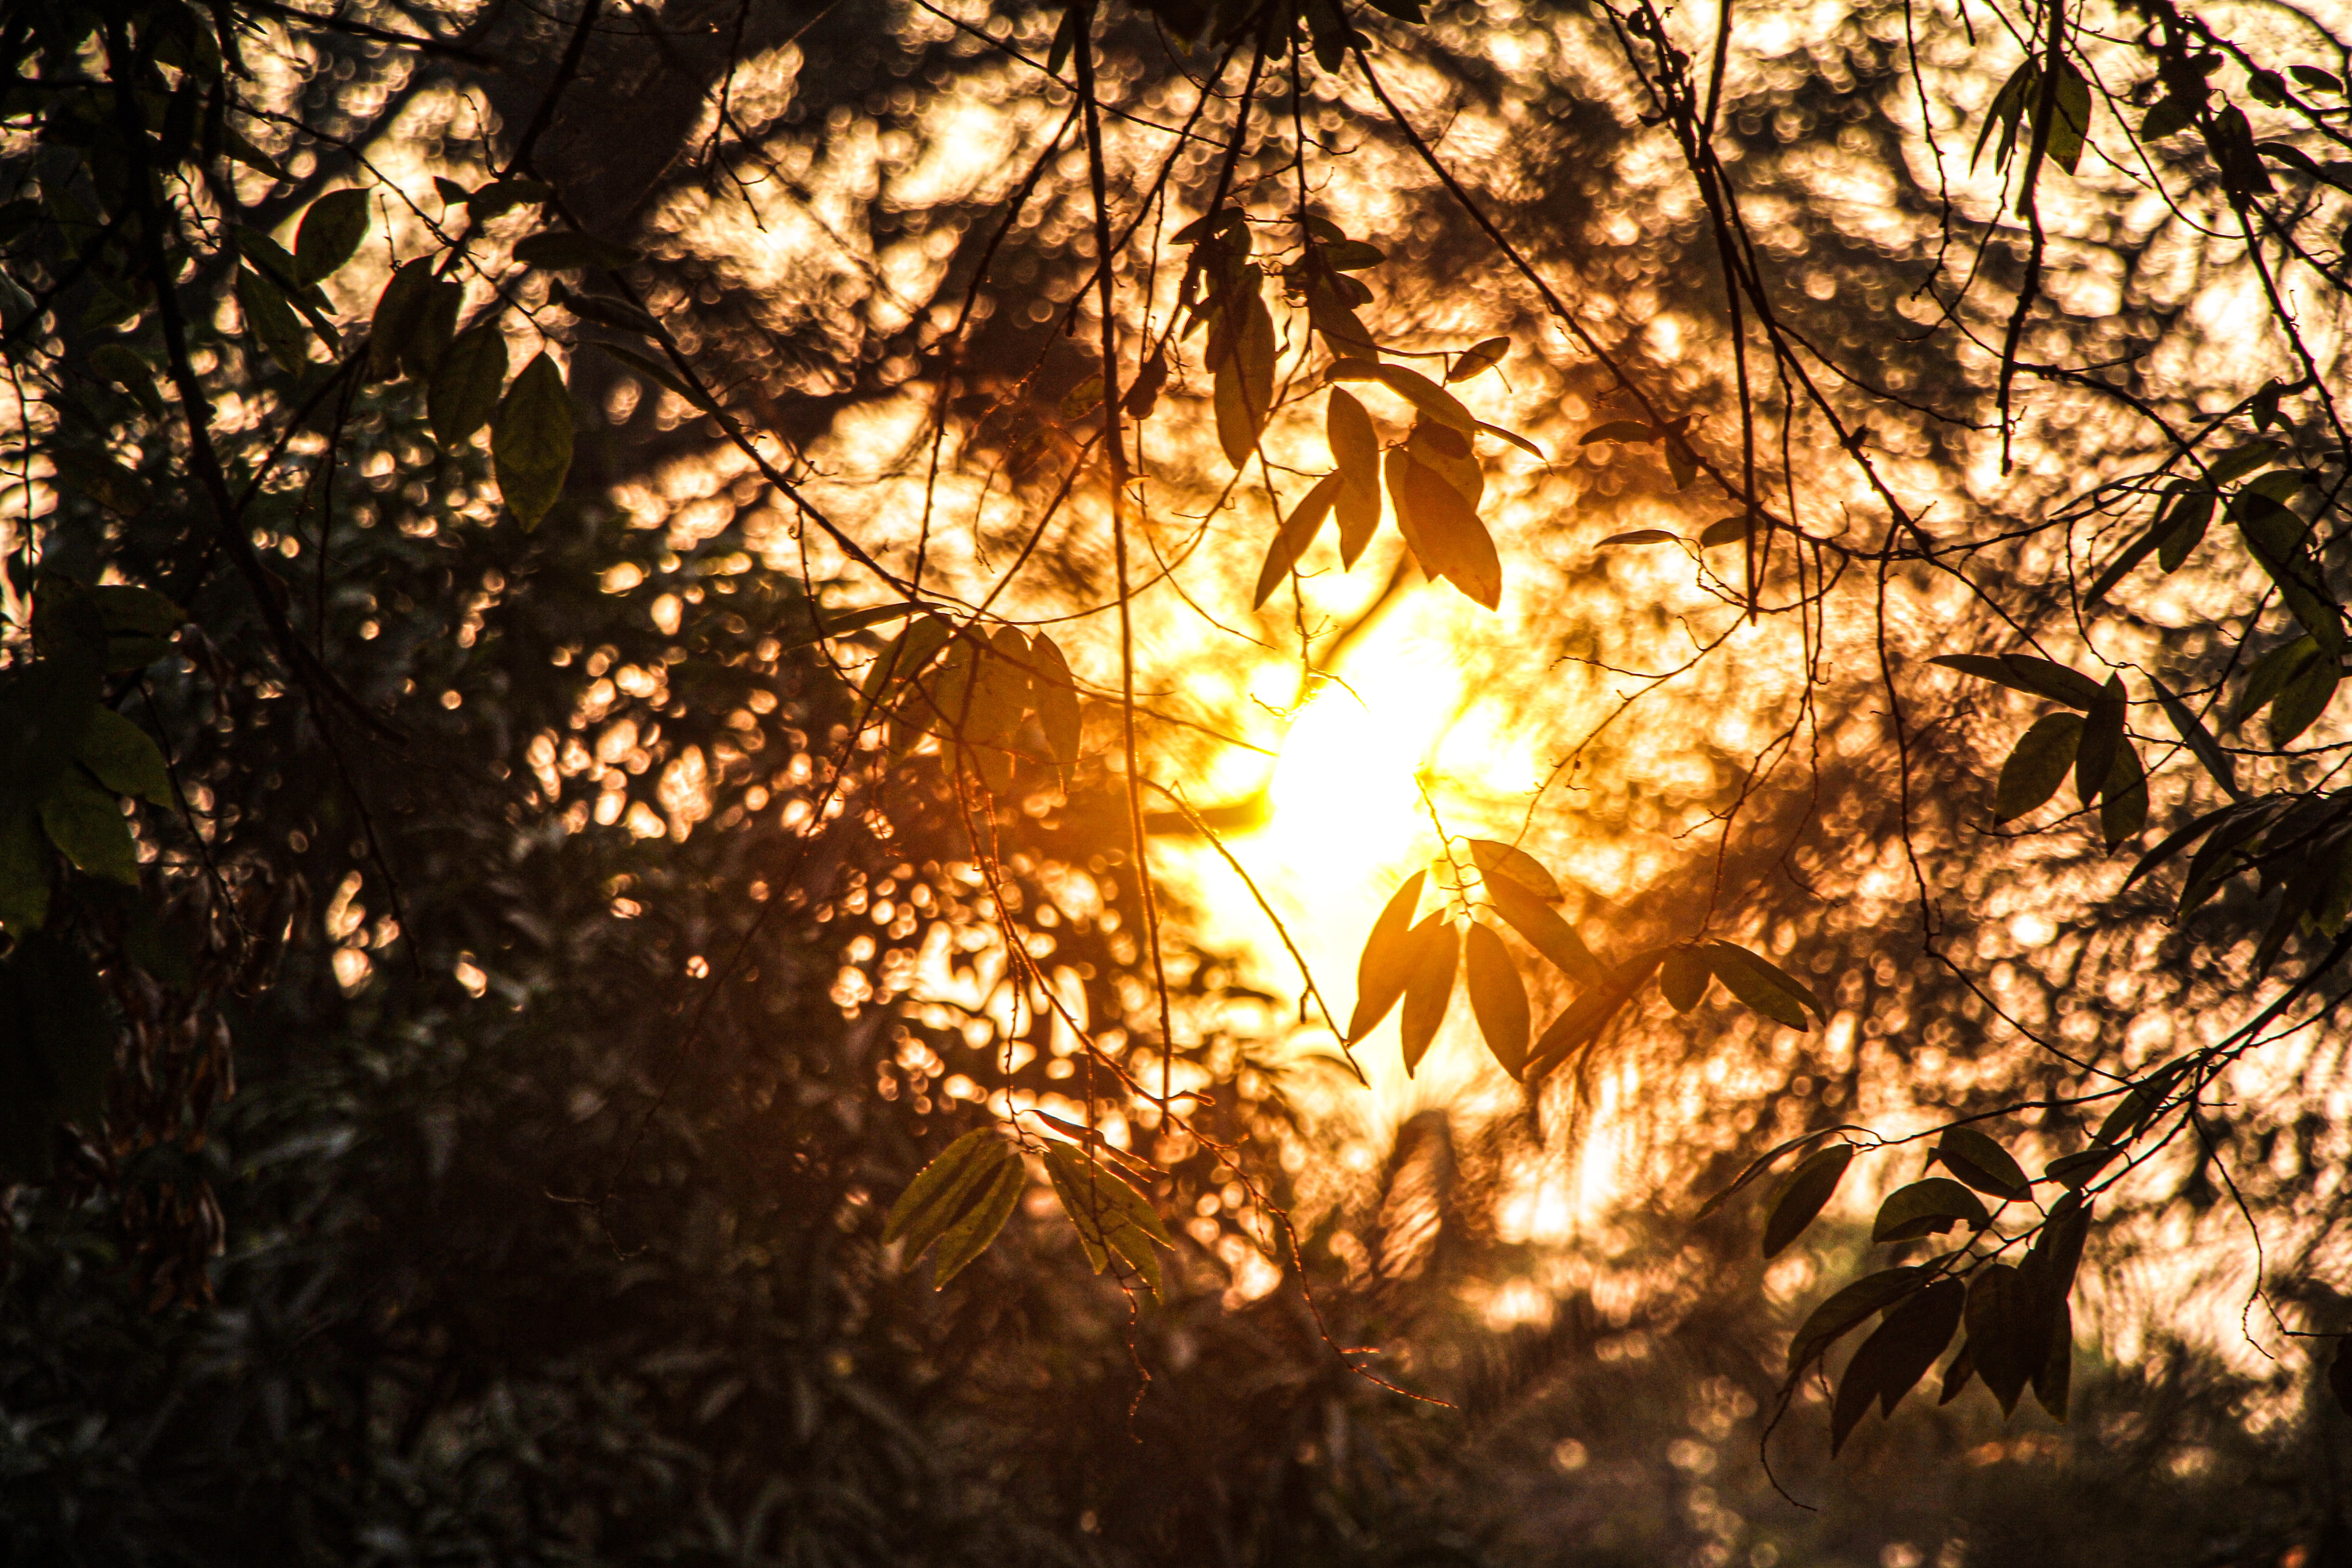 126311 download wallpaper Nature, Branches, Leaves, Sunlight, Summer screensavers and pictures for free